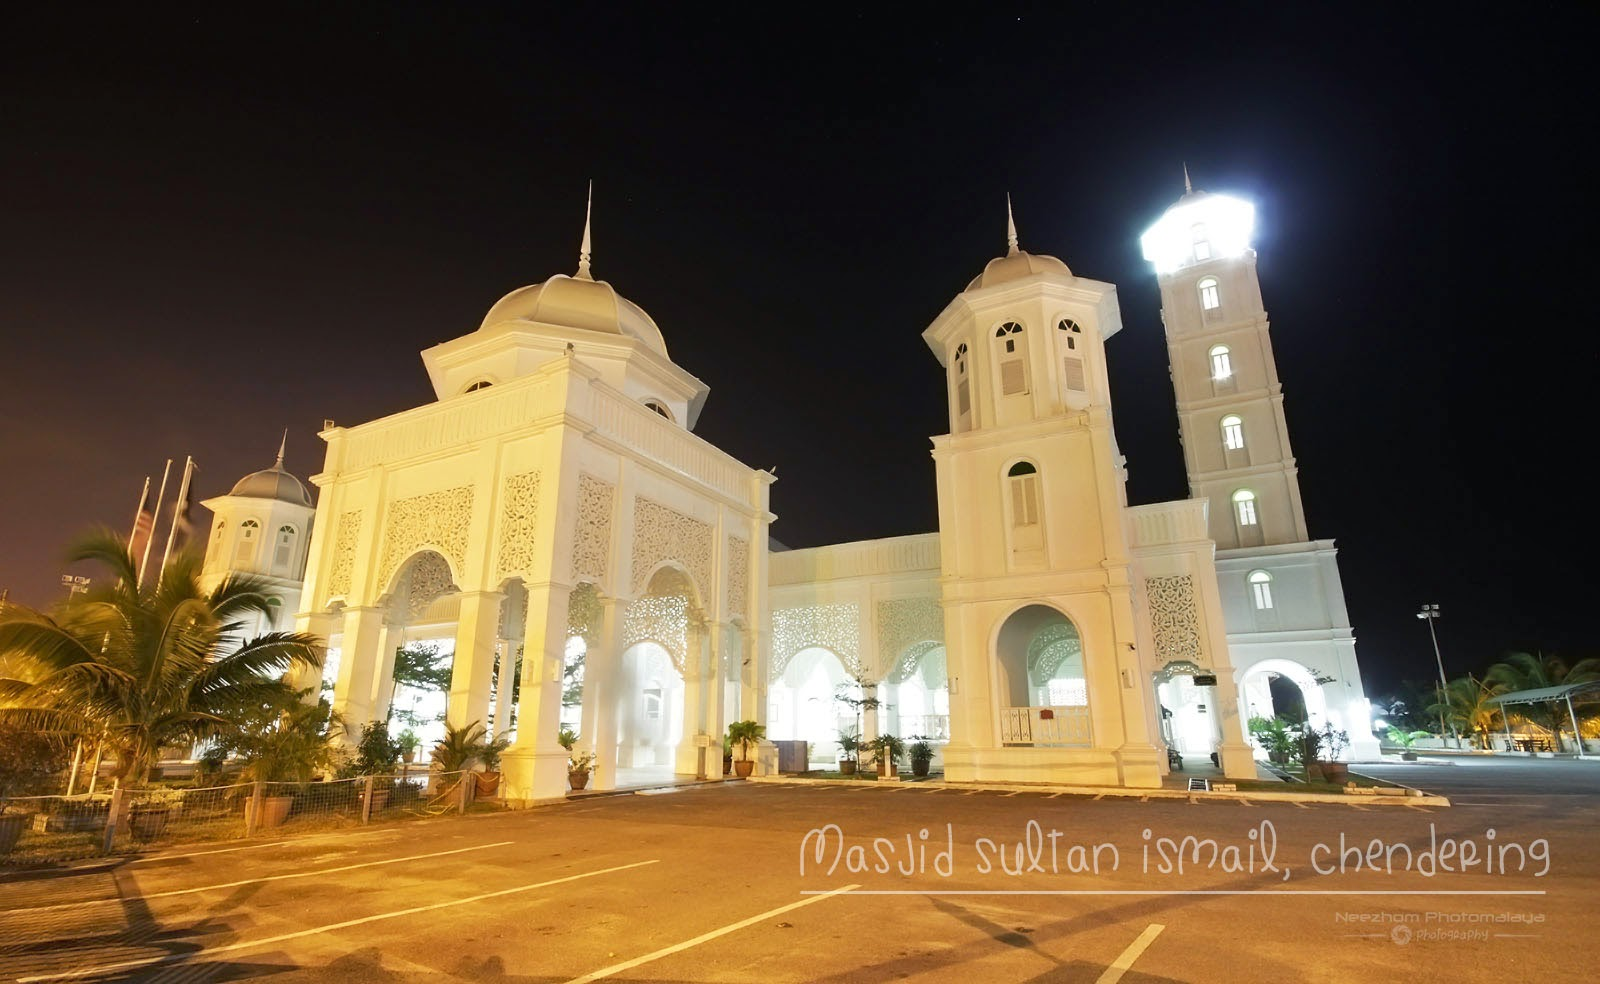 Masjid Sultan Ismail, Chendering